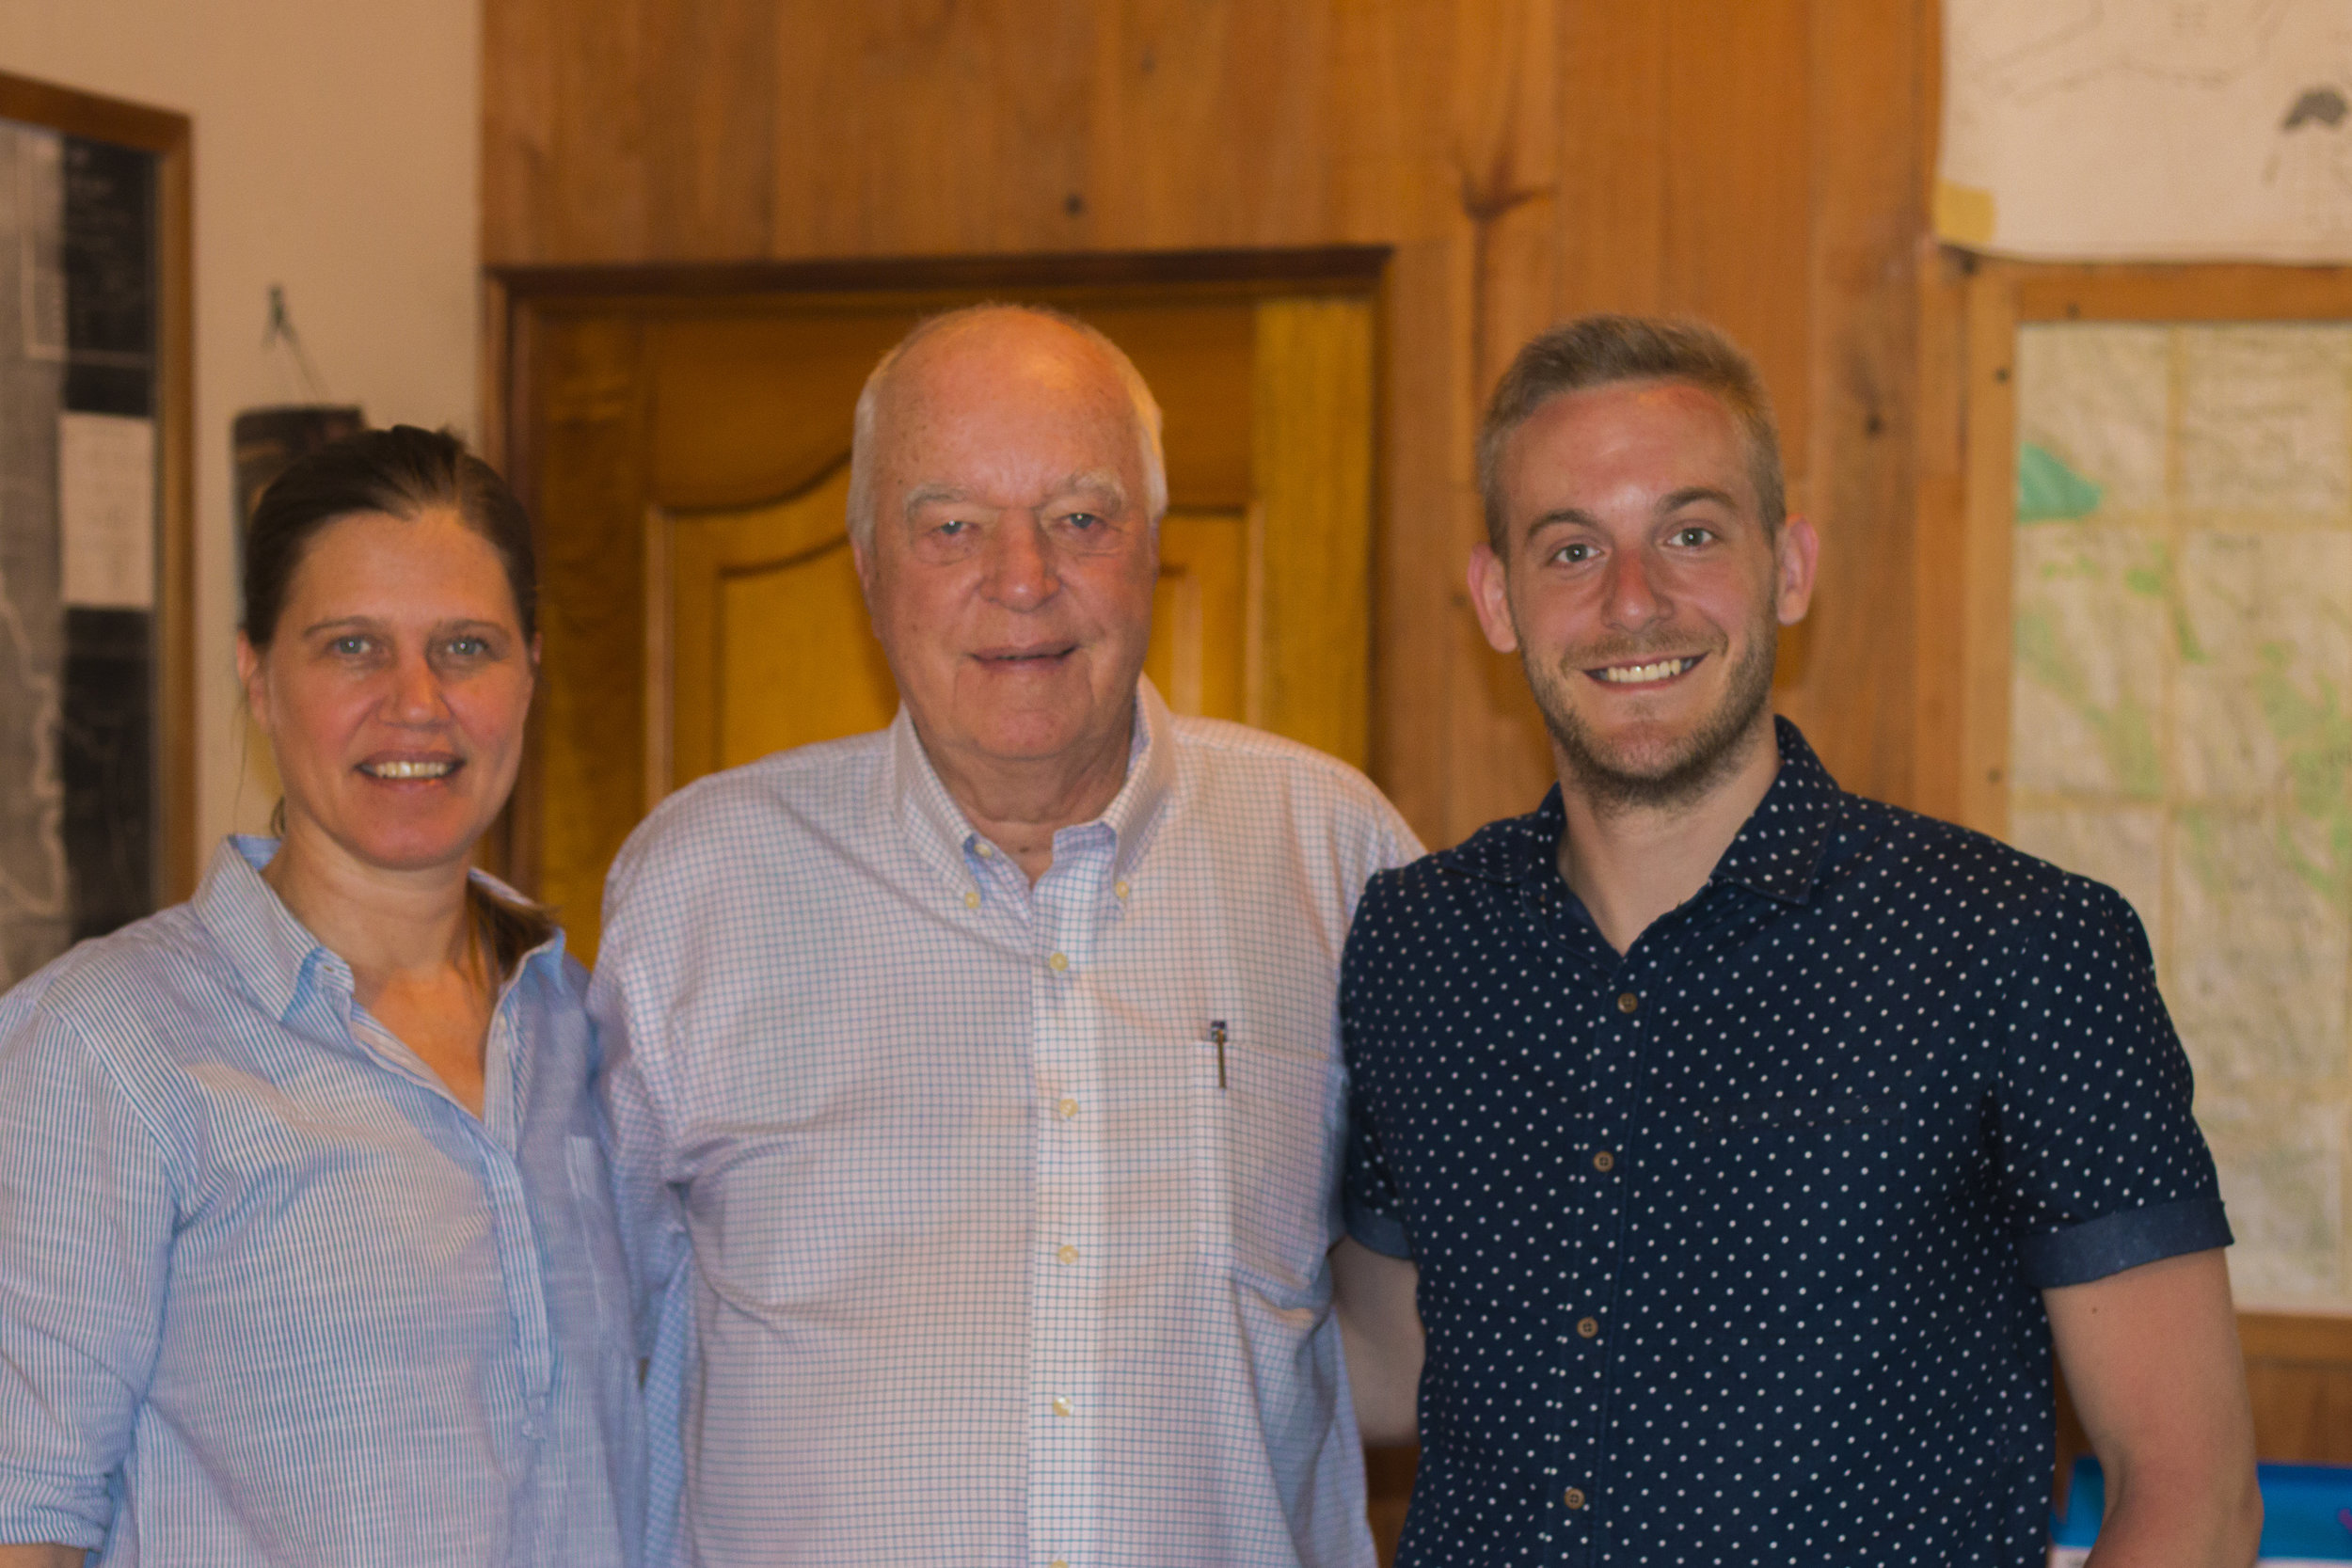 Ryan with Mr. Peterson and his daughter Rachel, owners of one of the most prestigious farms in Panama.